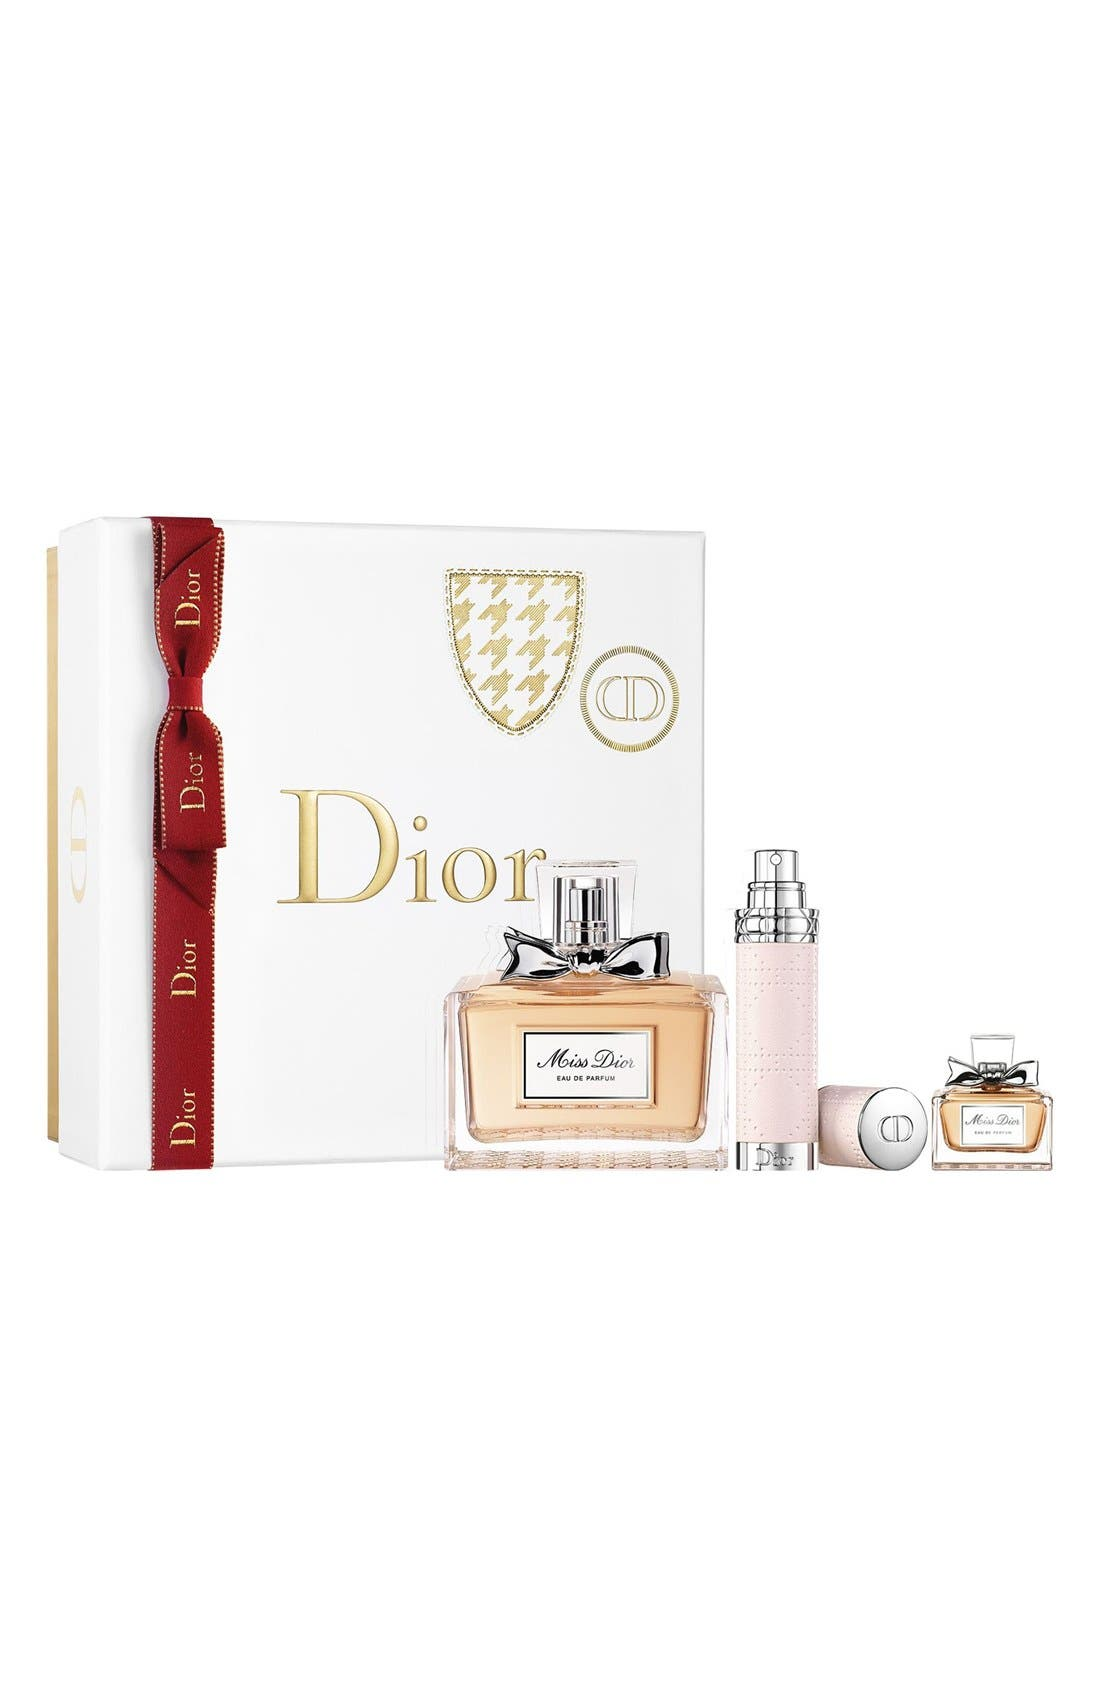 'Miss Dior' Eau de Parfum Deluxe Set,                             Main thumbnail 1, color,                             000